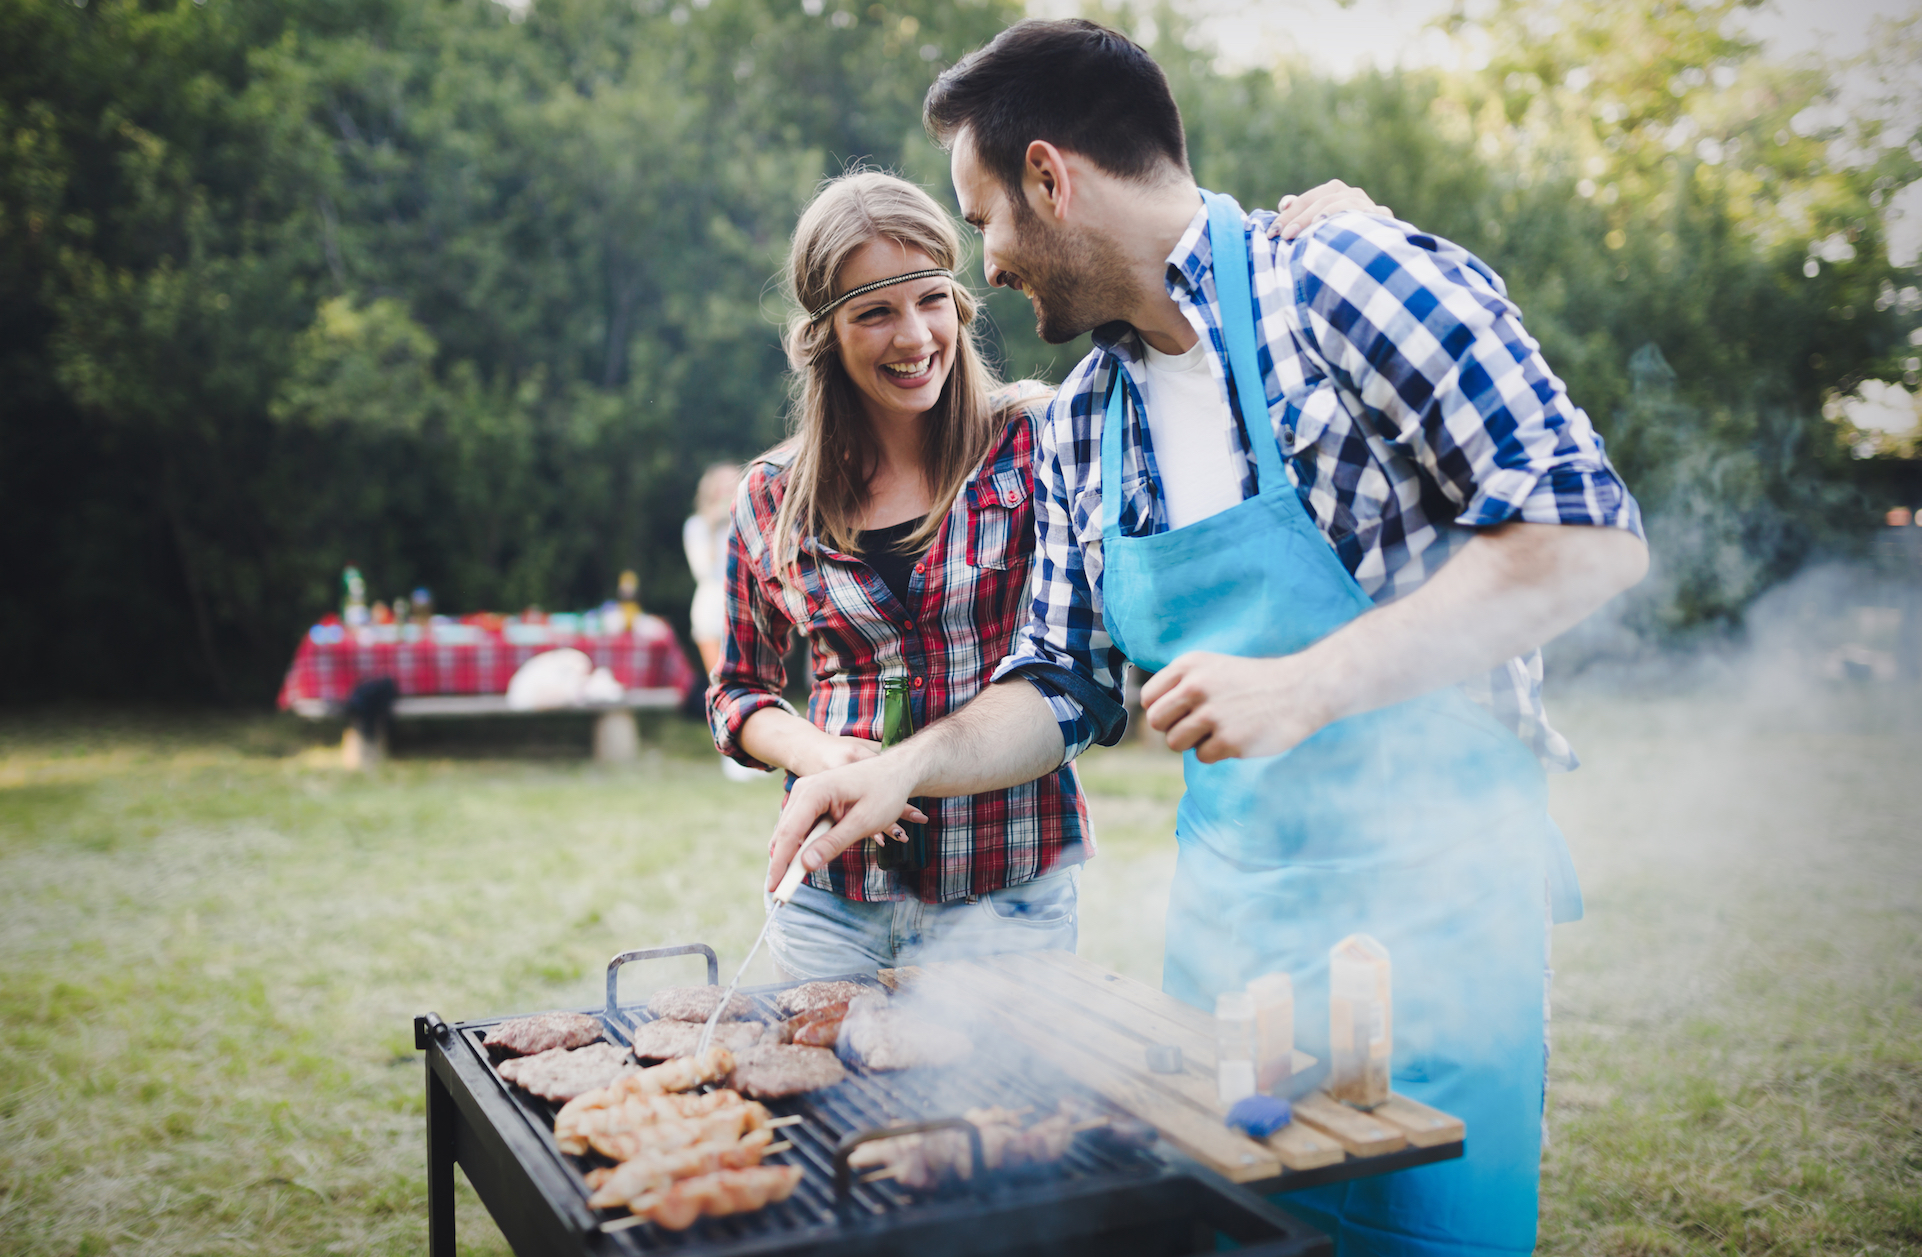 As the official start of grilling season approaches, new research suggests that changing clothes after a cookout may help prevent exposure to harmful carcinogens produced in barbecue smoke.